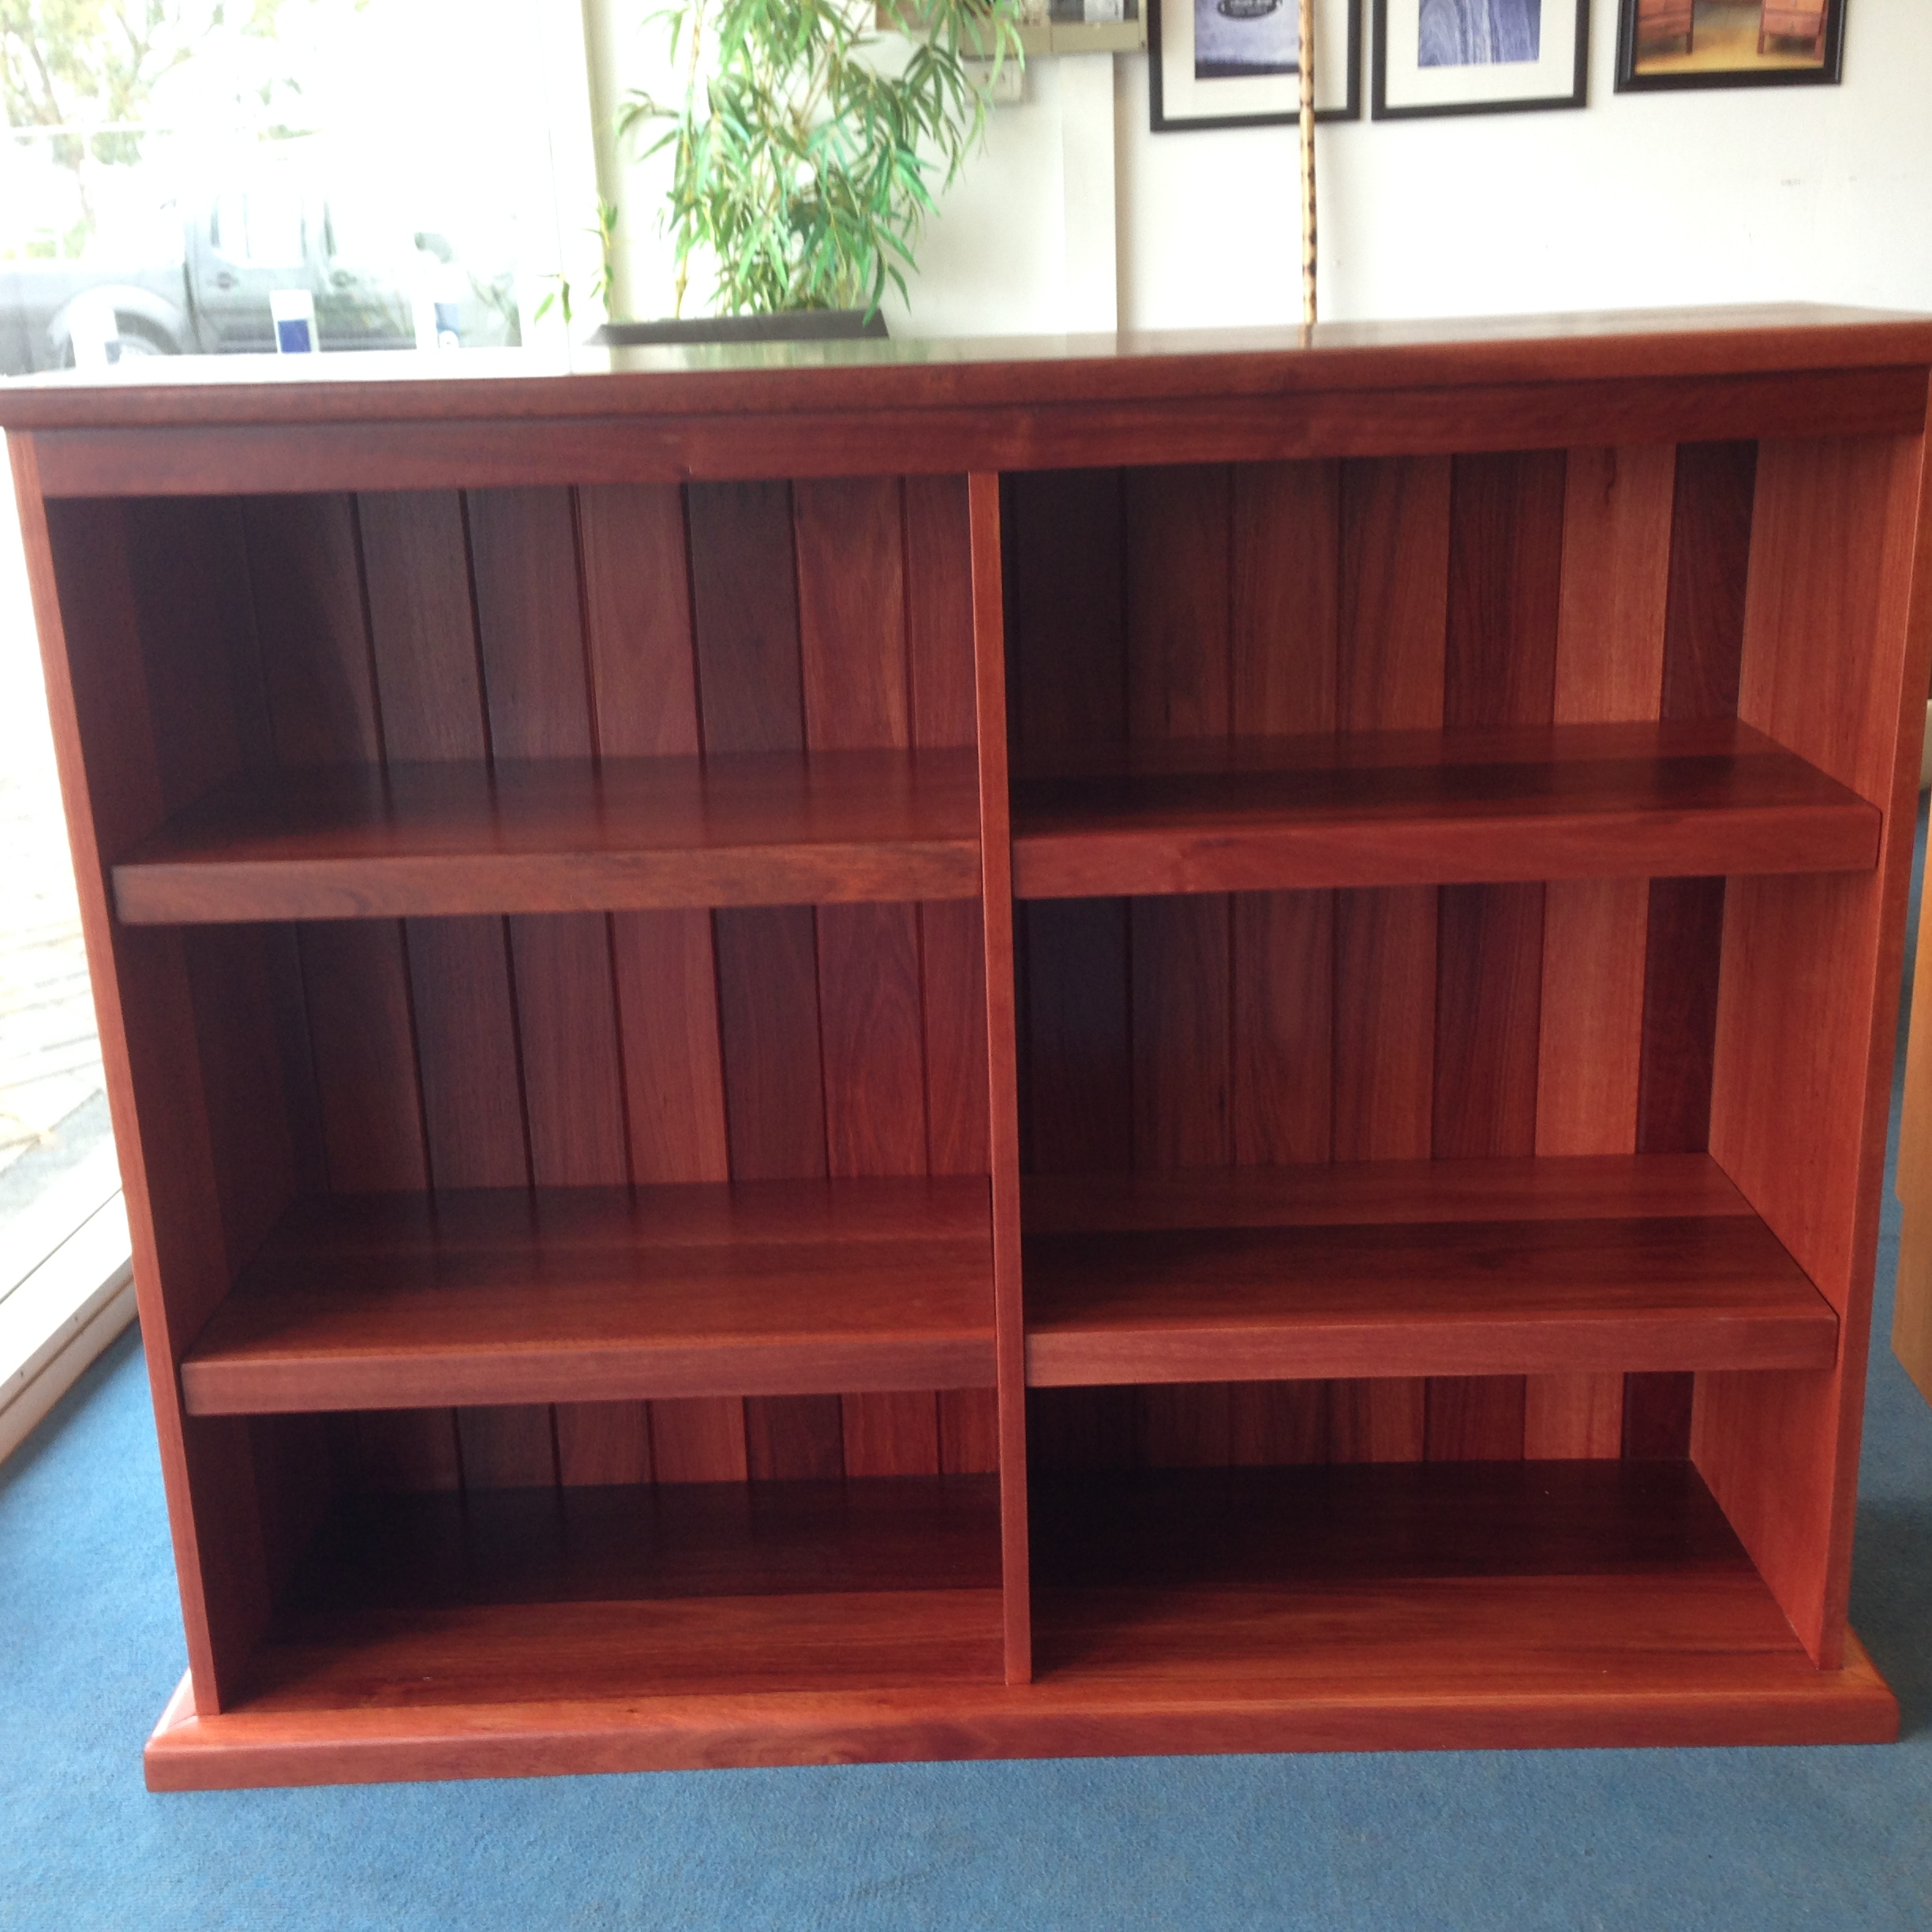 Jarrah custom low bookcase 900 x 1200 x 350 mm